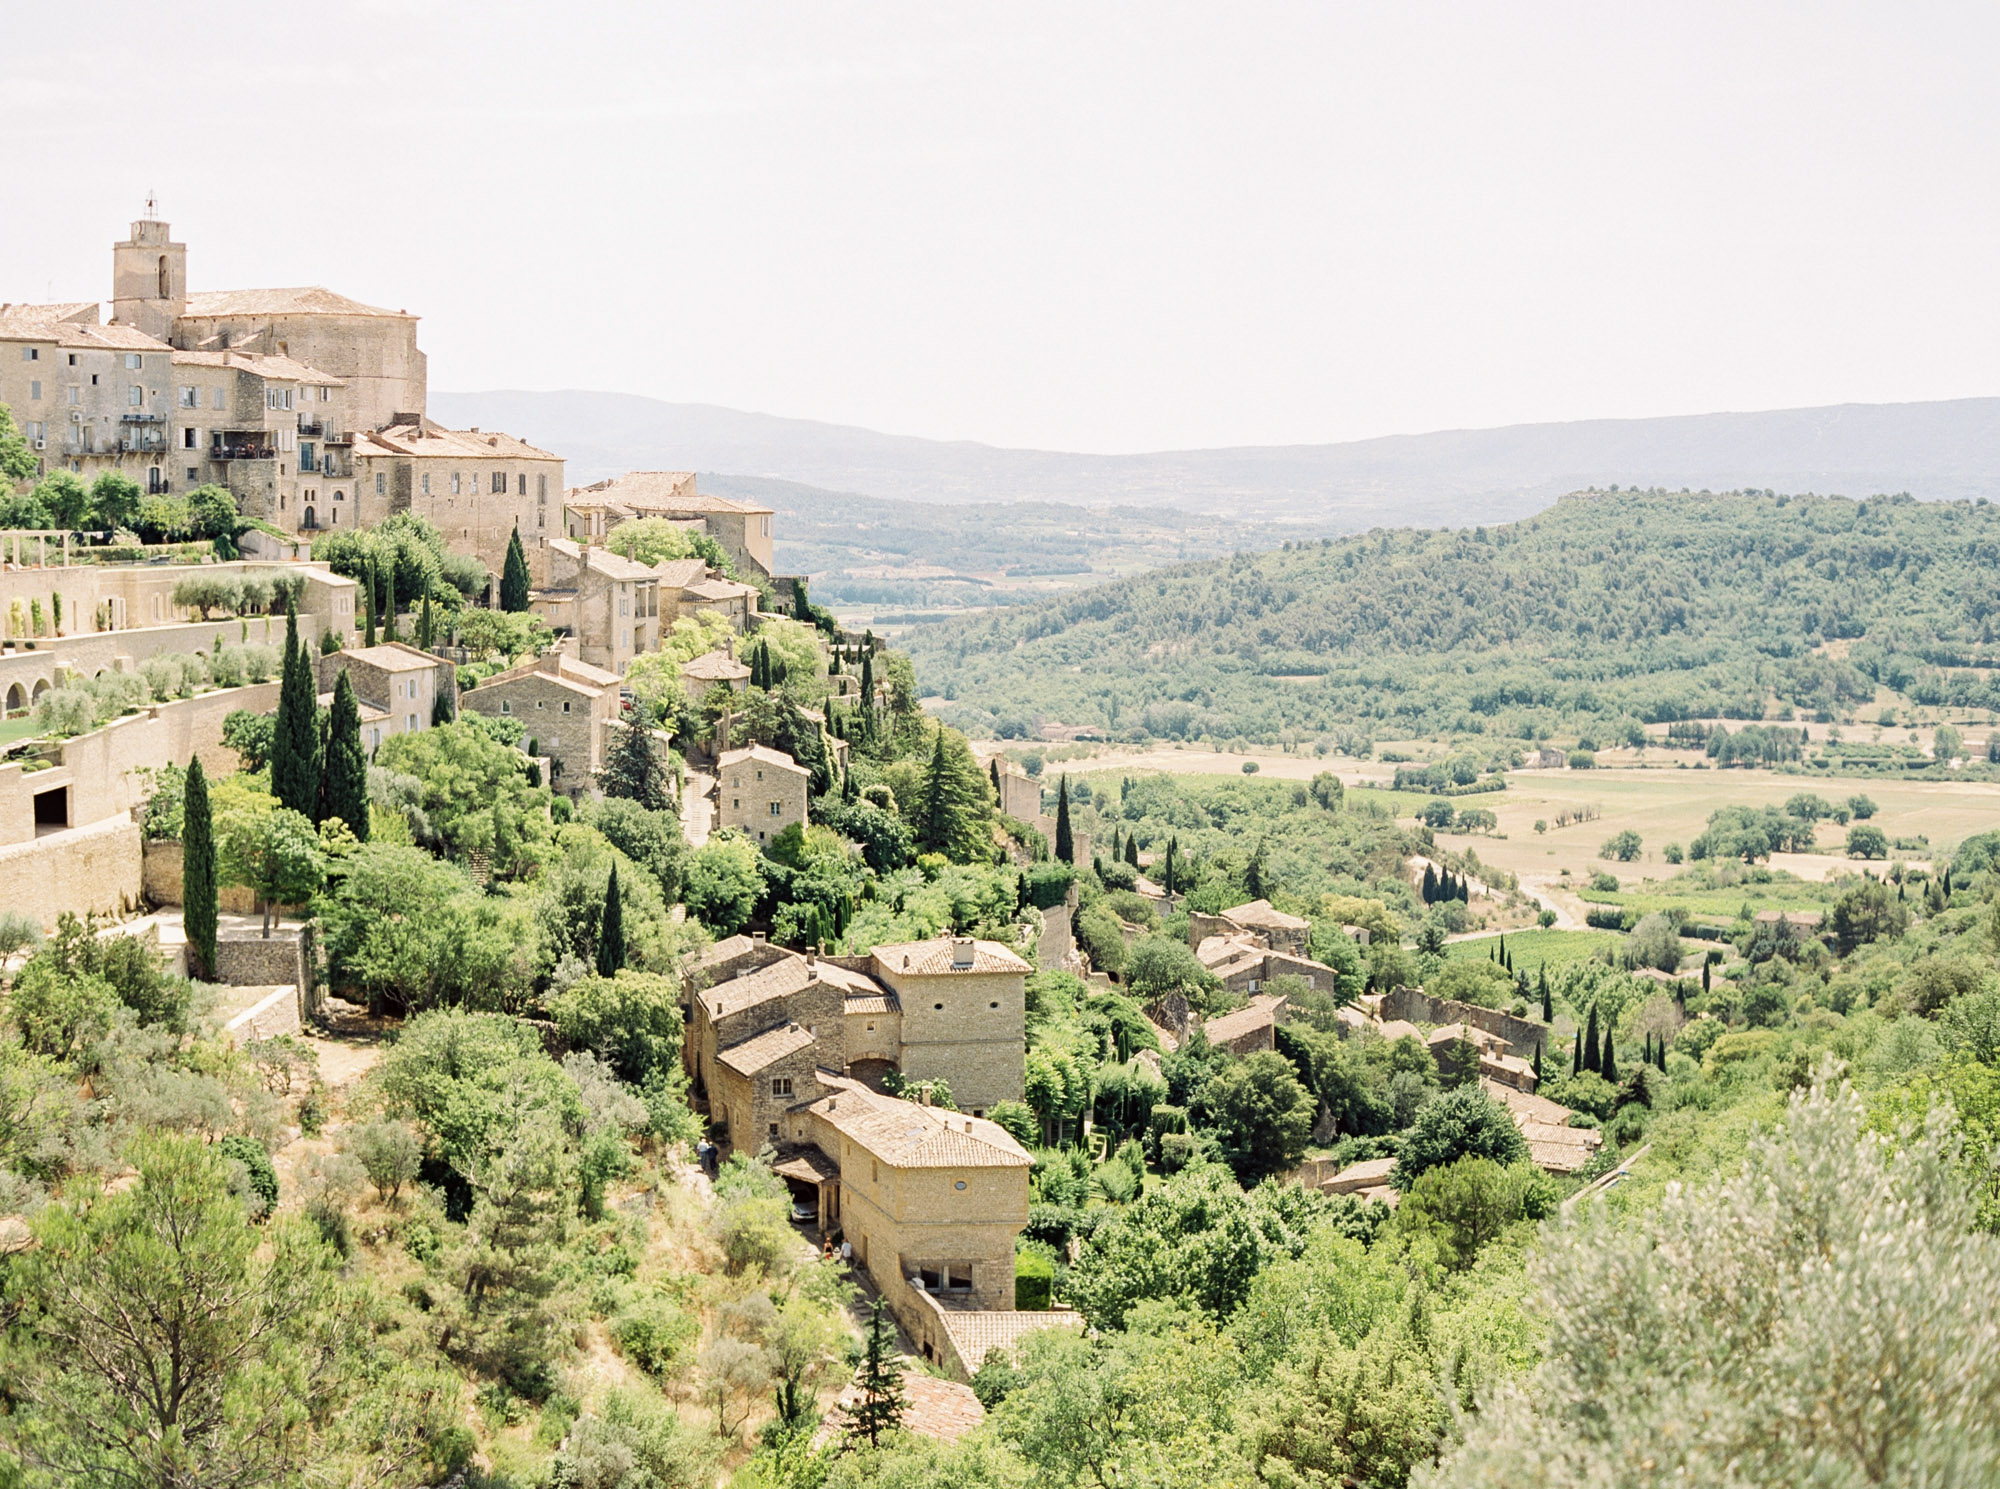 cody_hunter_pvtakeover_contax645_fuji400_gordes_france_photovisionprints.jpg